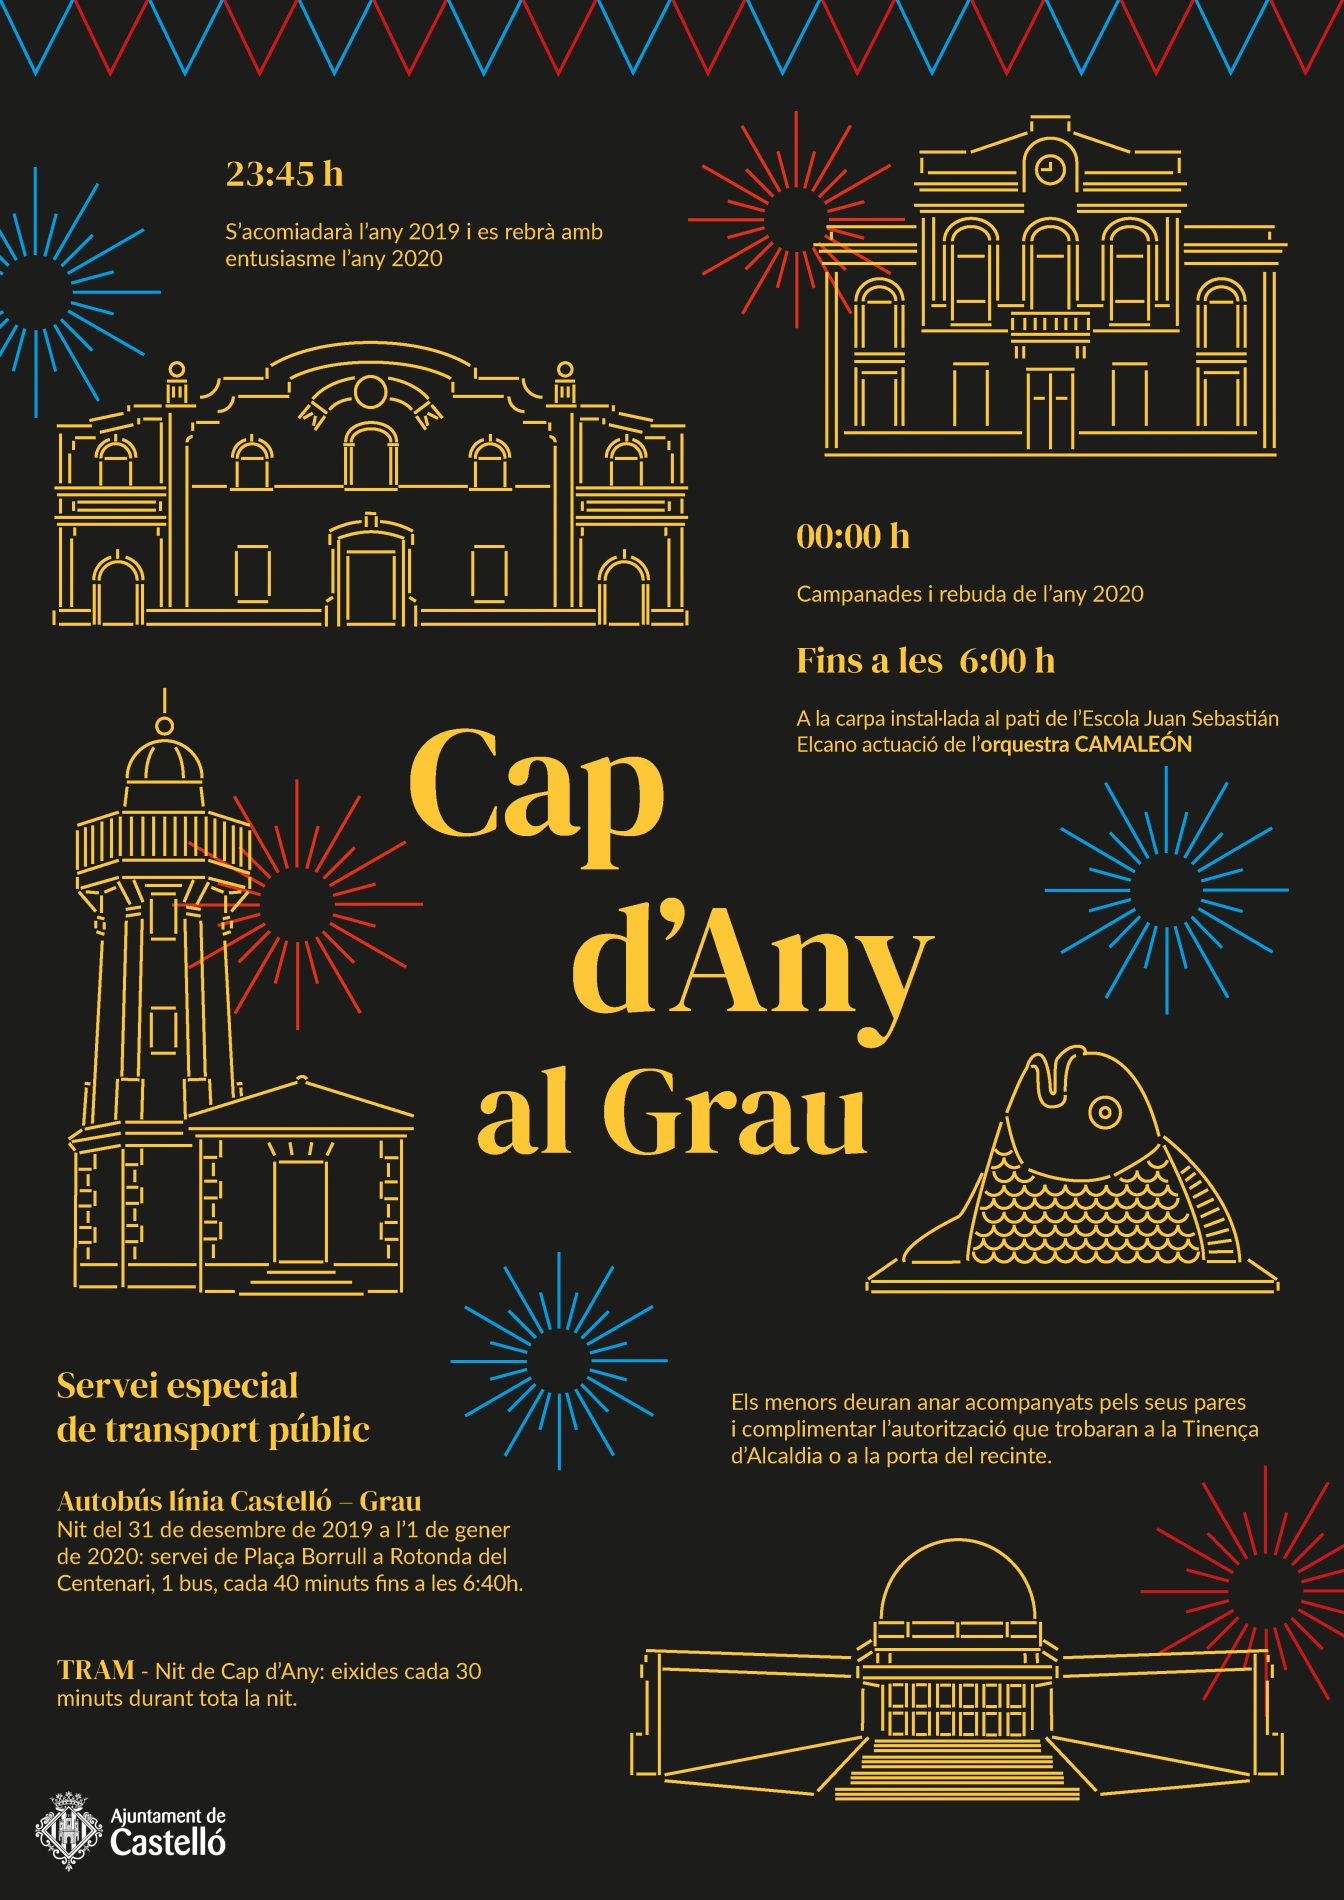 JPEG_HD_02-12-19 Cartell Cap d'Any